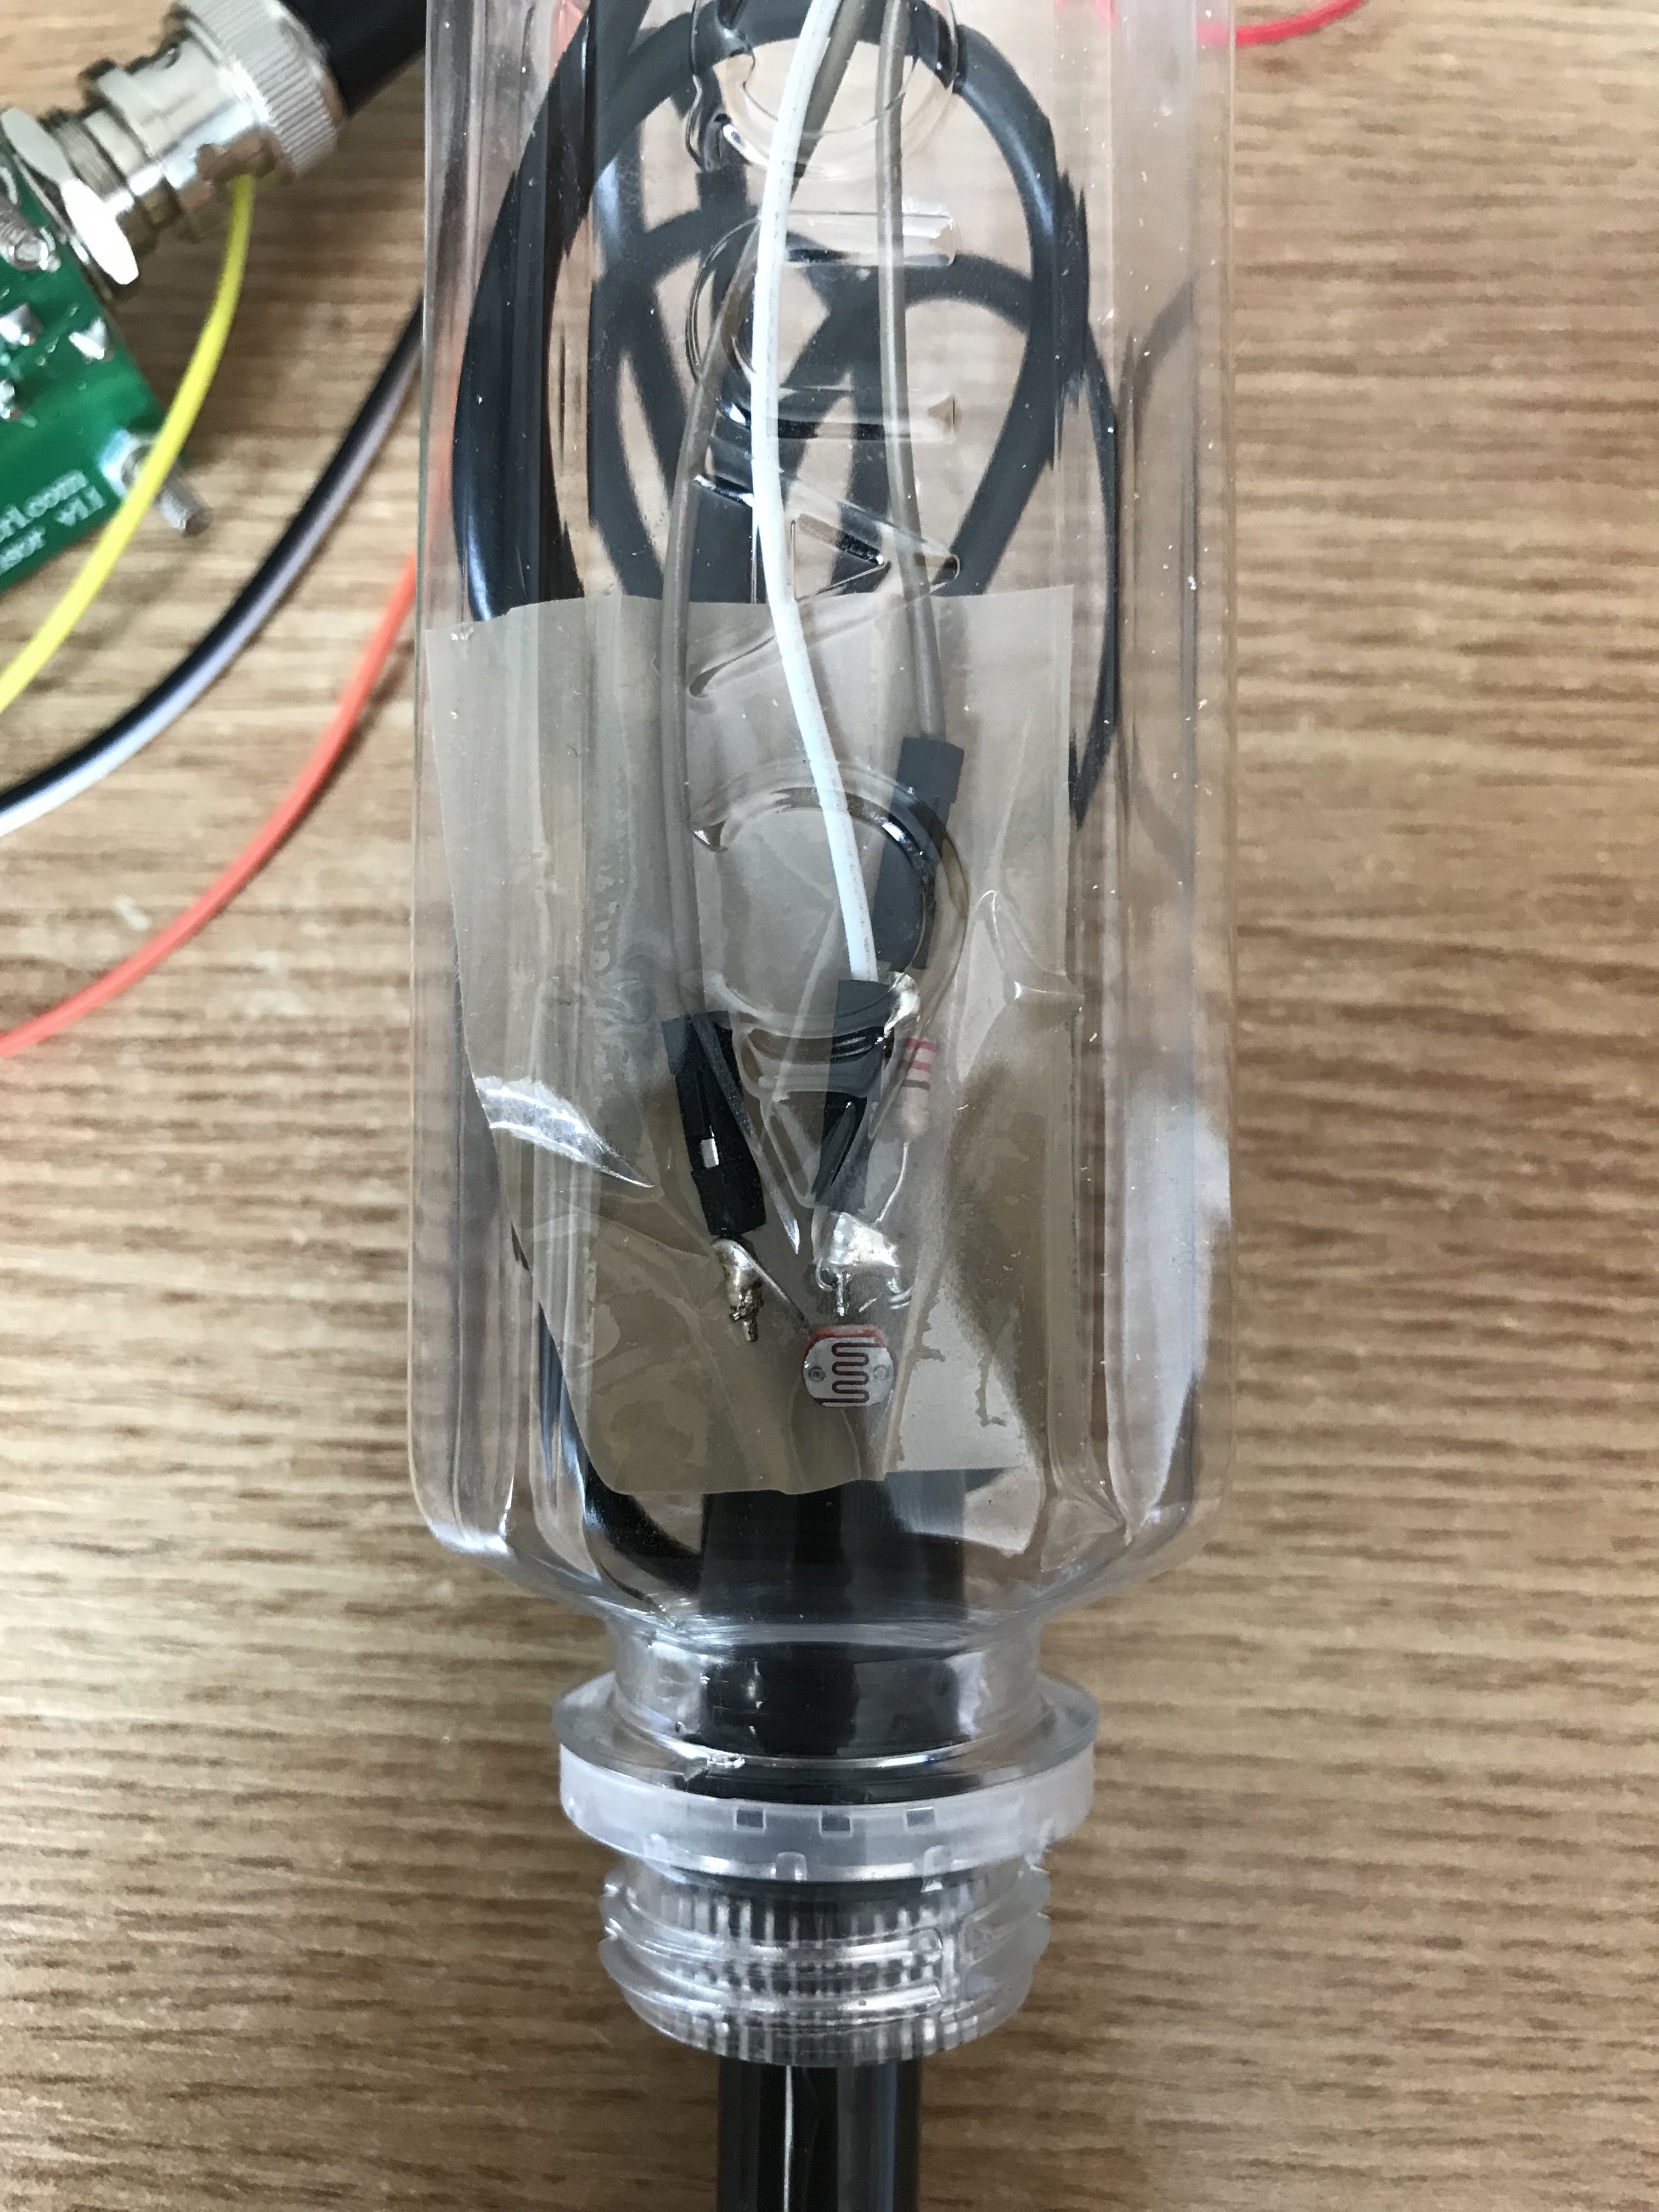 Tape the photoresistor close to the bottle's hole